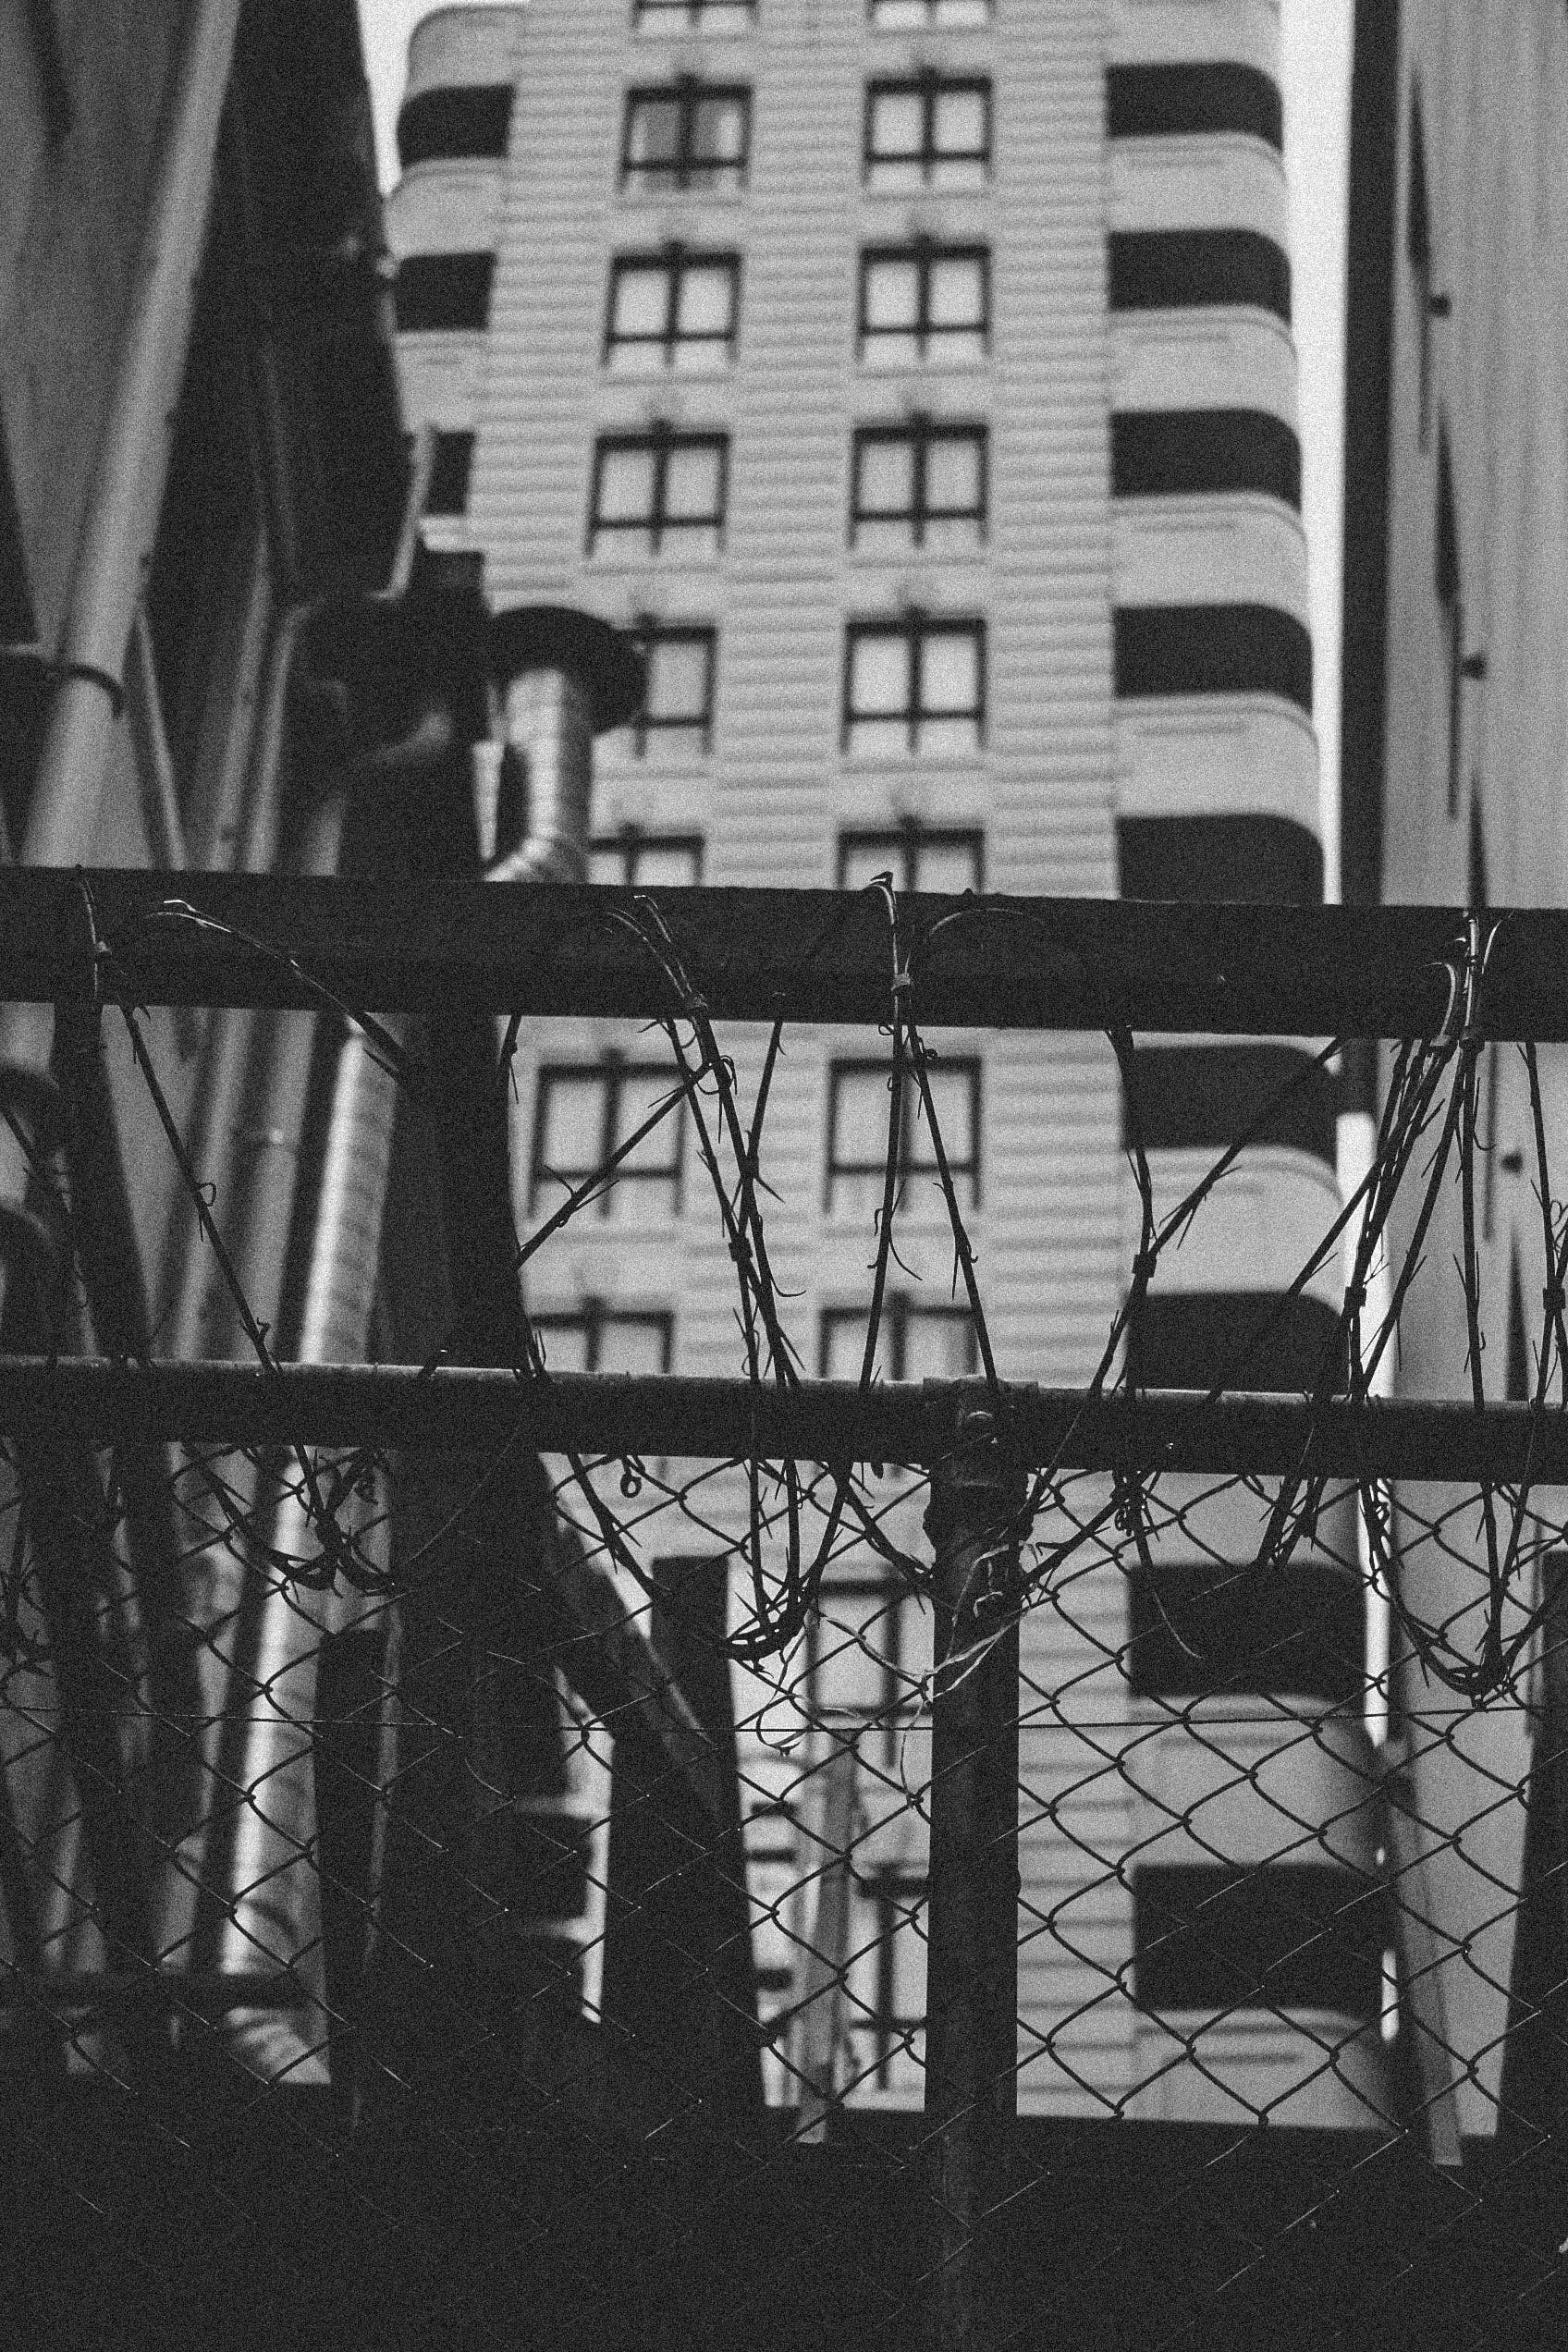 Grayscale Photography of Chain Link Fence Near Building